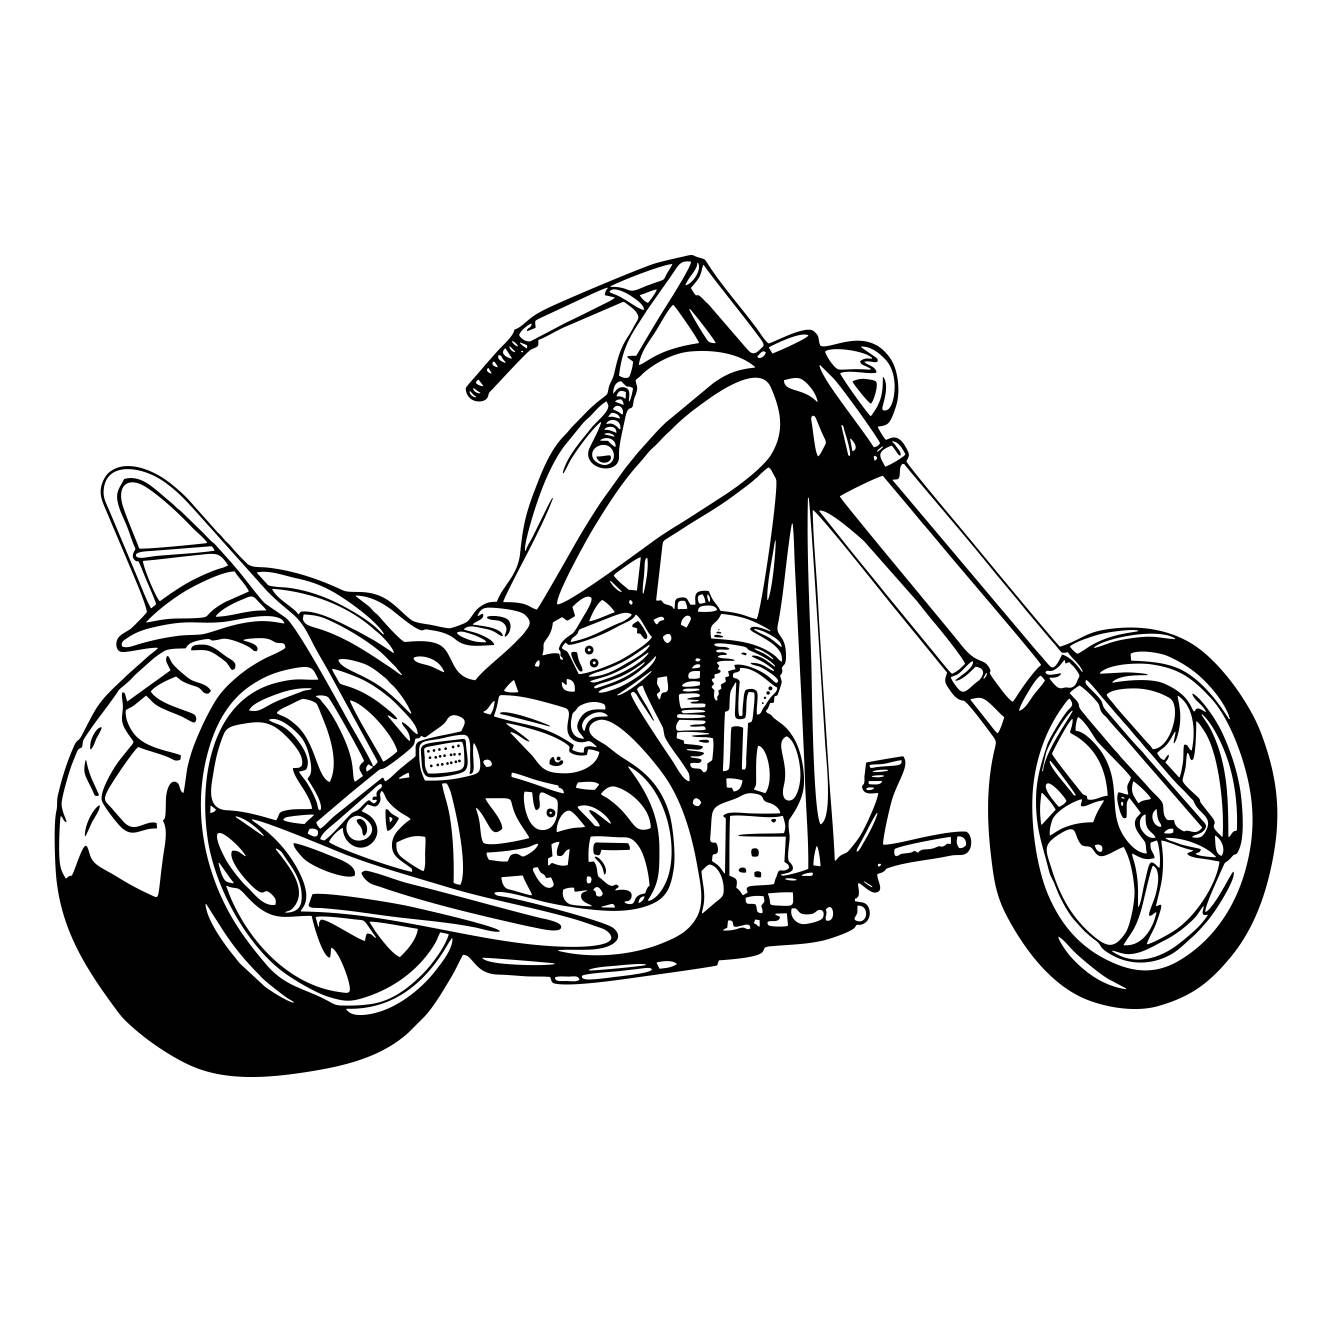 Motorcycle clipart motorcycle stickers motorcycle art bike art chopper motorcycle harley